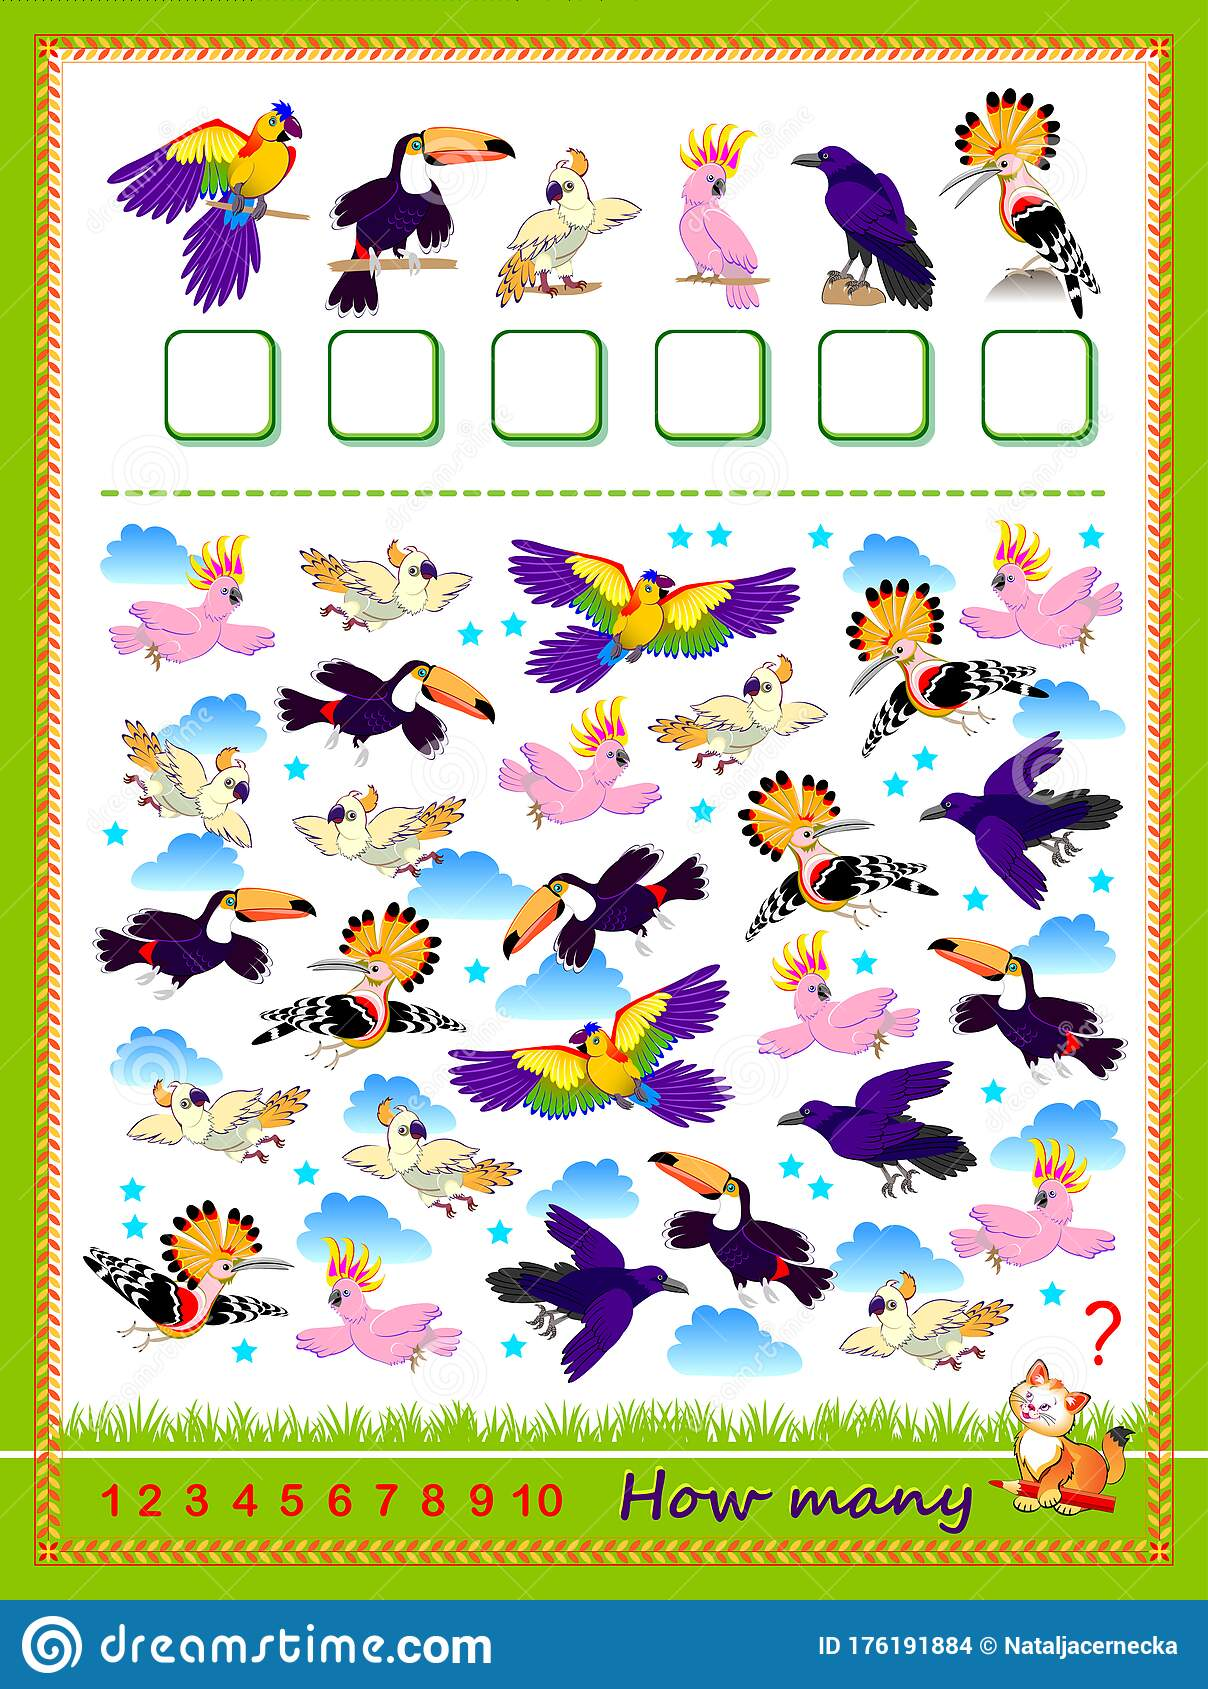 Math Education For Children Count Quantity Of Birds And